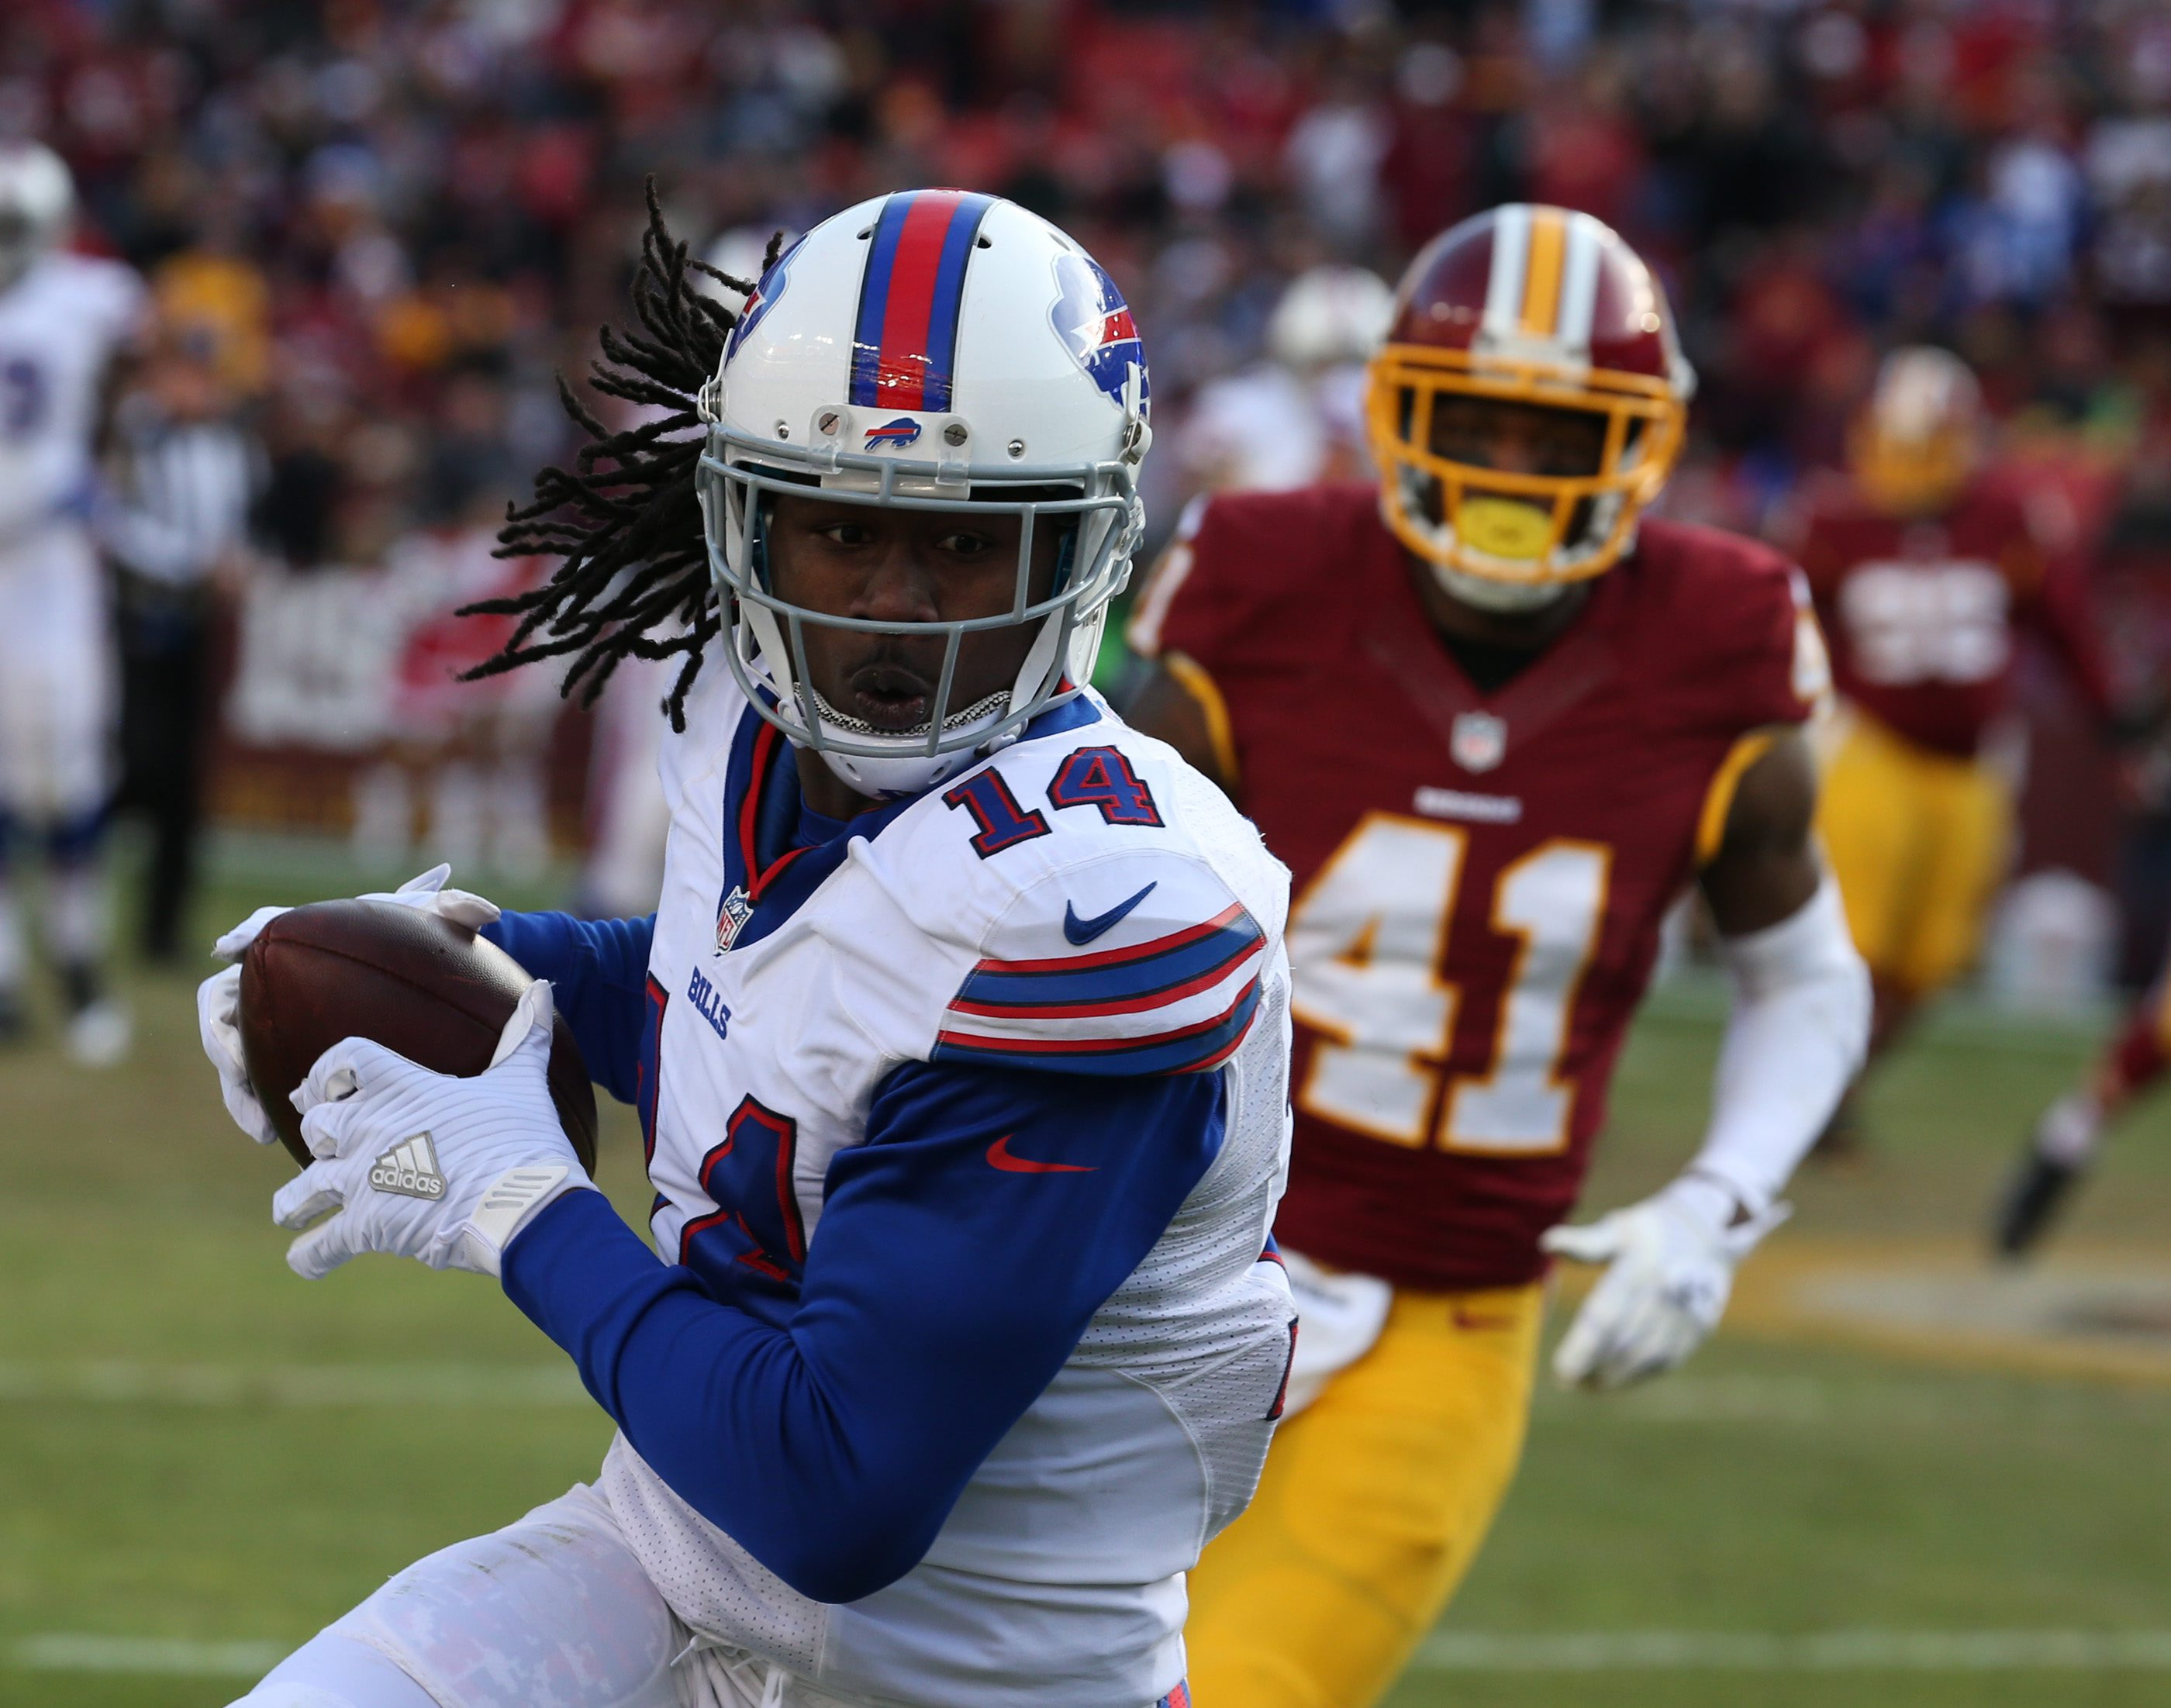 Bills receiver Sammy Watkins is rehabbing from a second surgery on his foot.  (James P. McCoy/ Buffalo News)